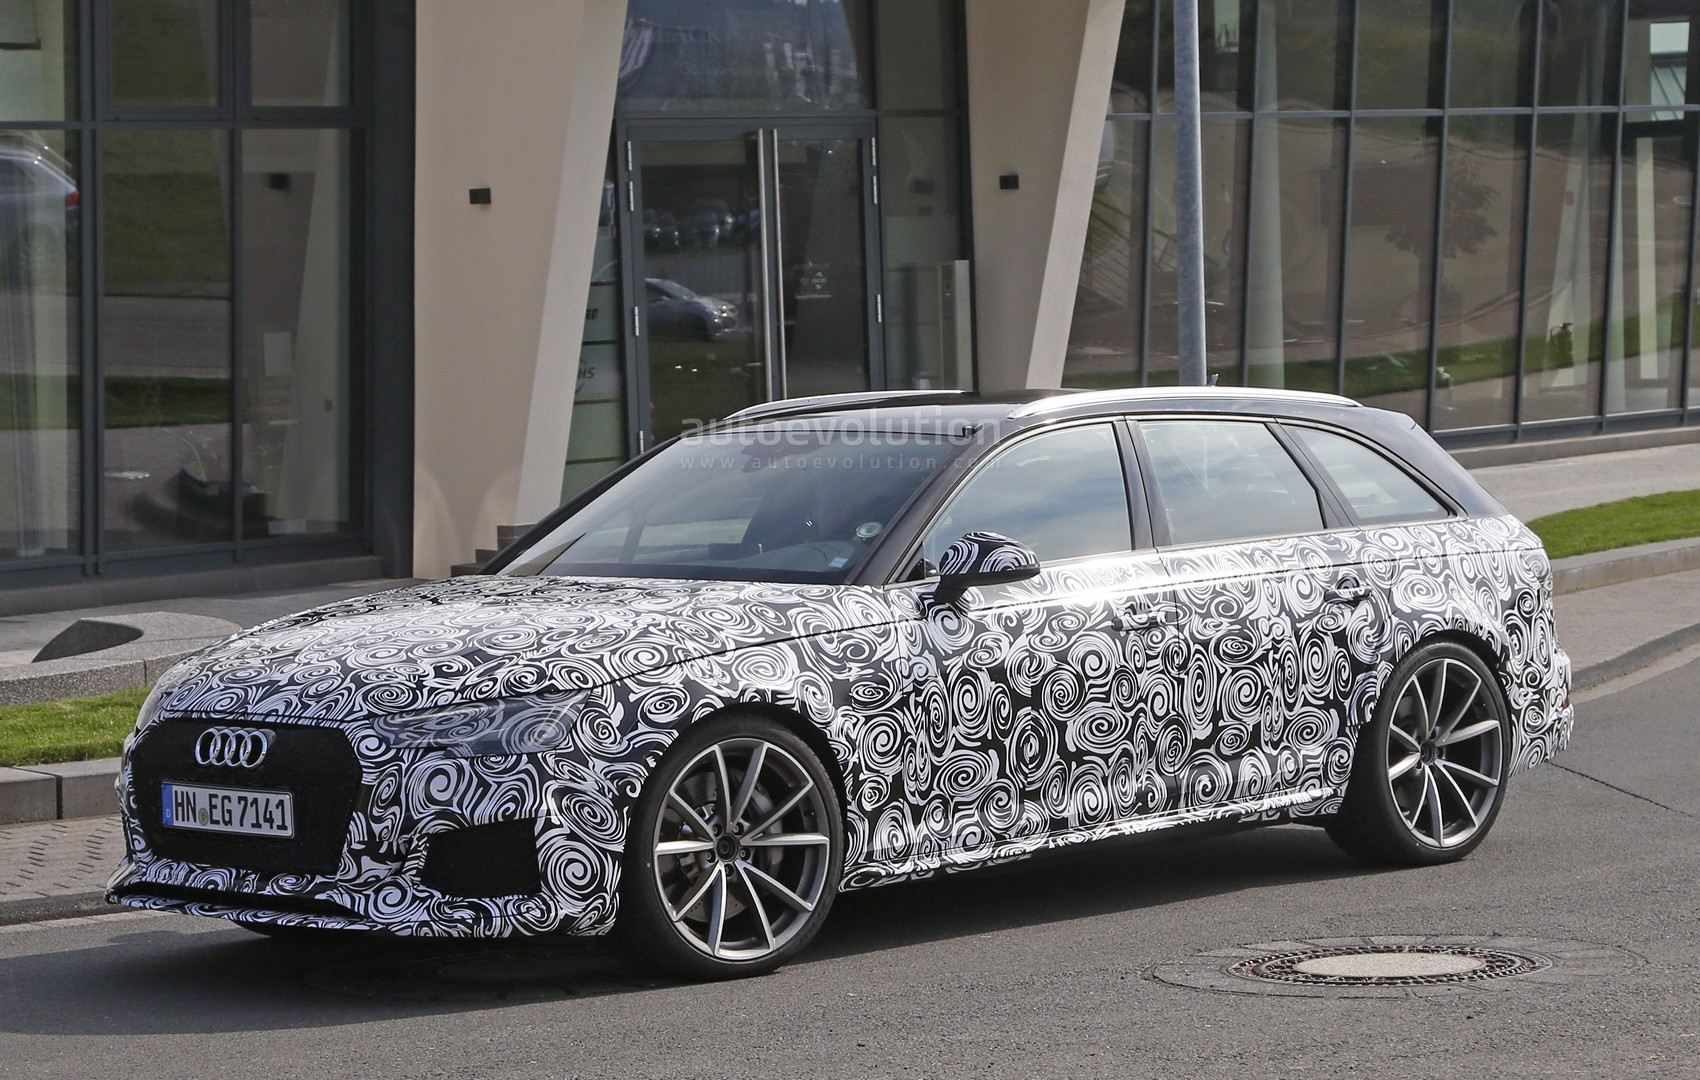 spyshots 2018 audi rs4 avant prototype looks very muscular autoevolution. Black Bedroom Furniture Sets. Home Design Ideas